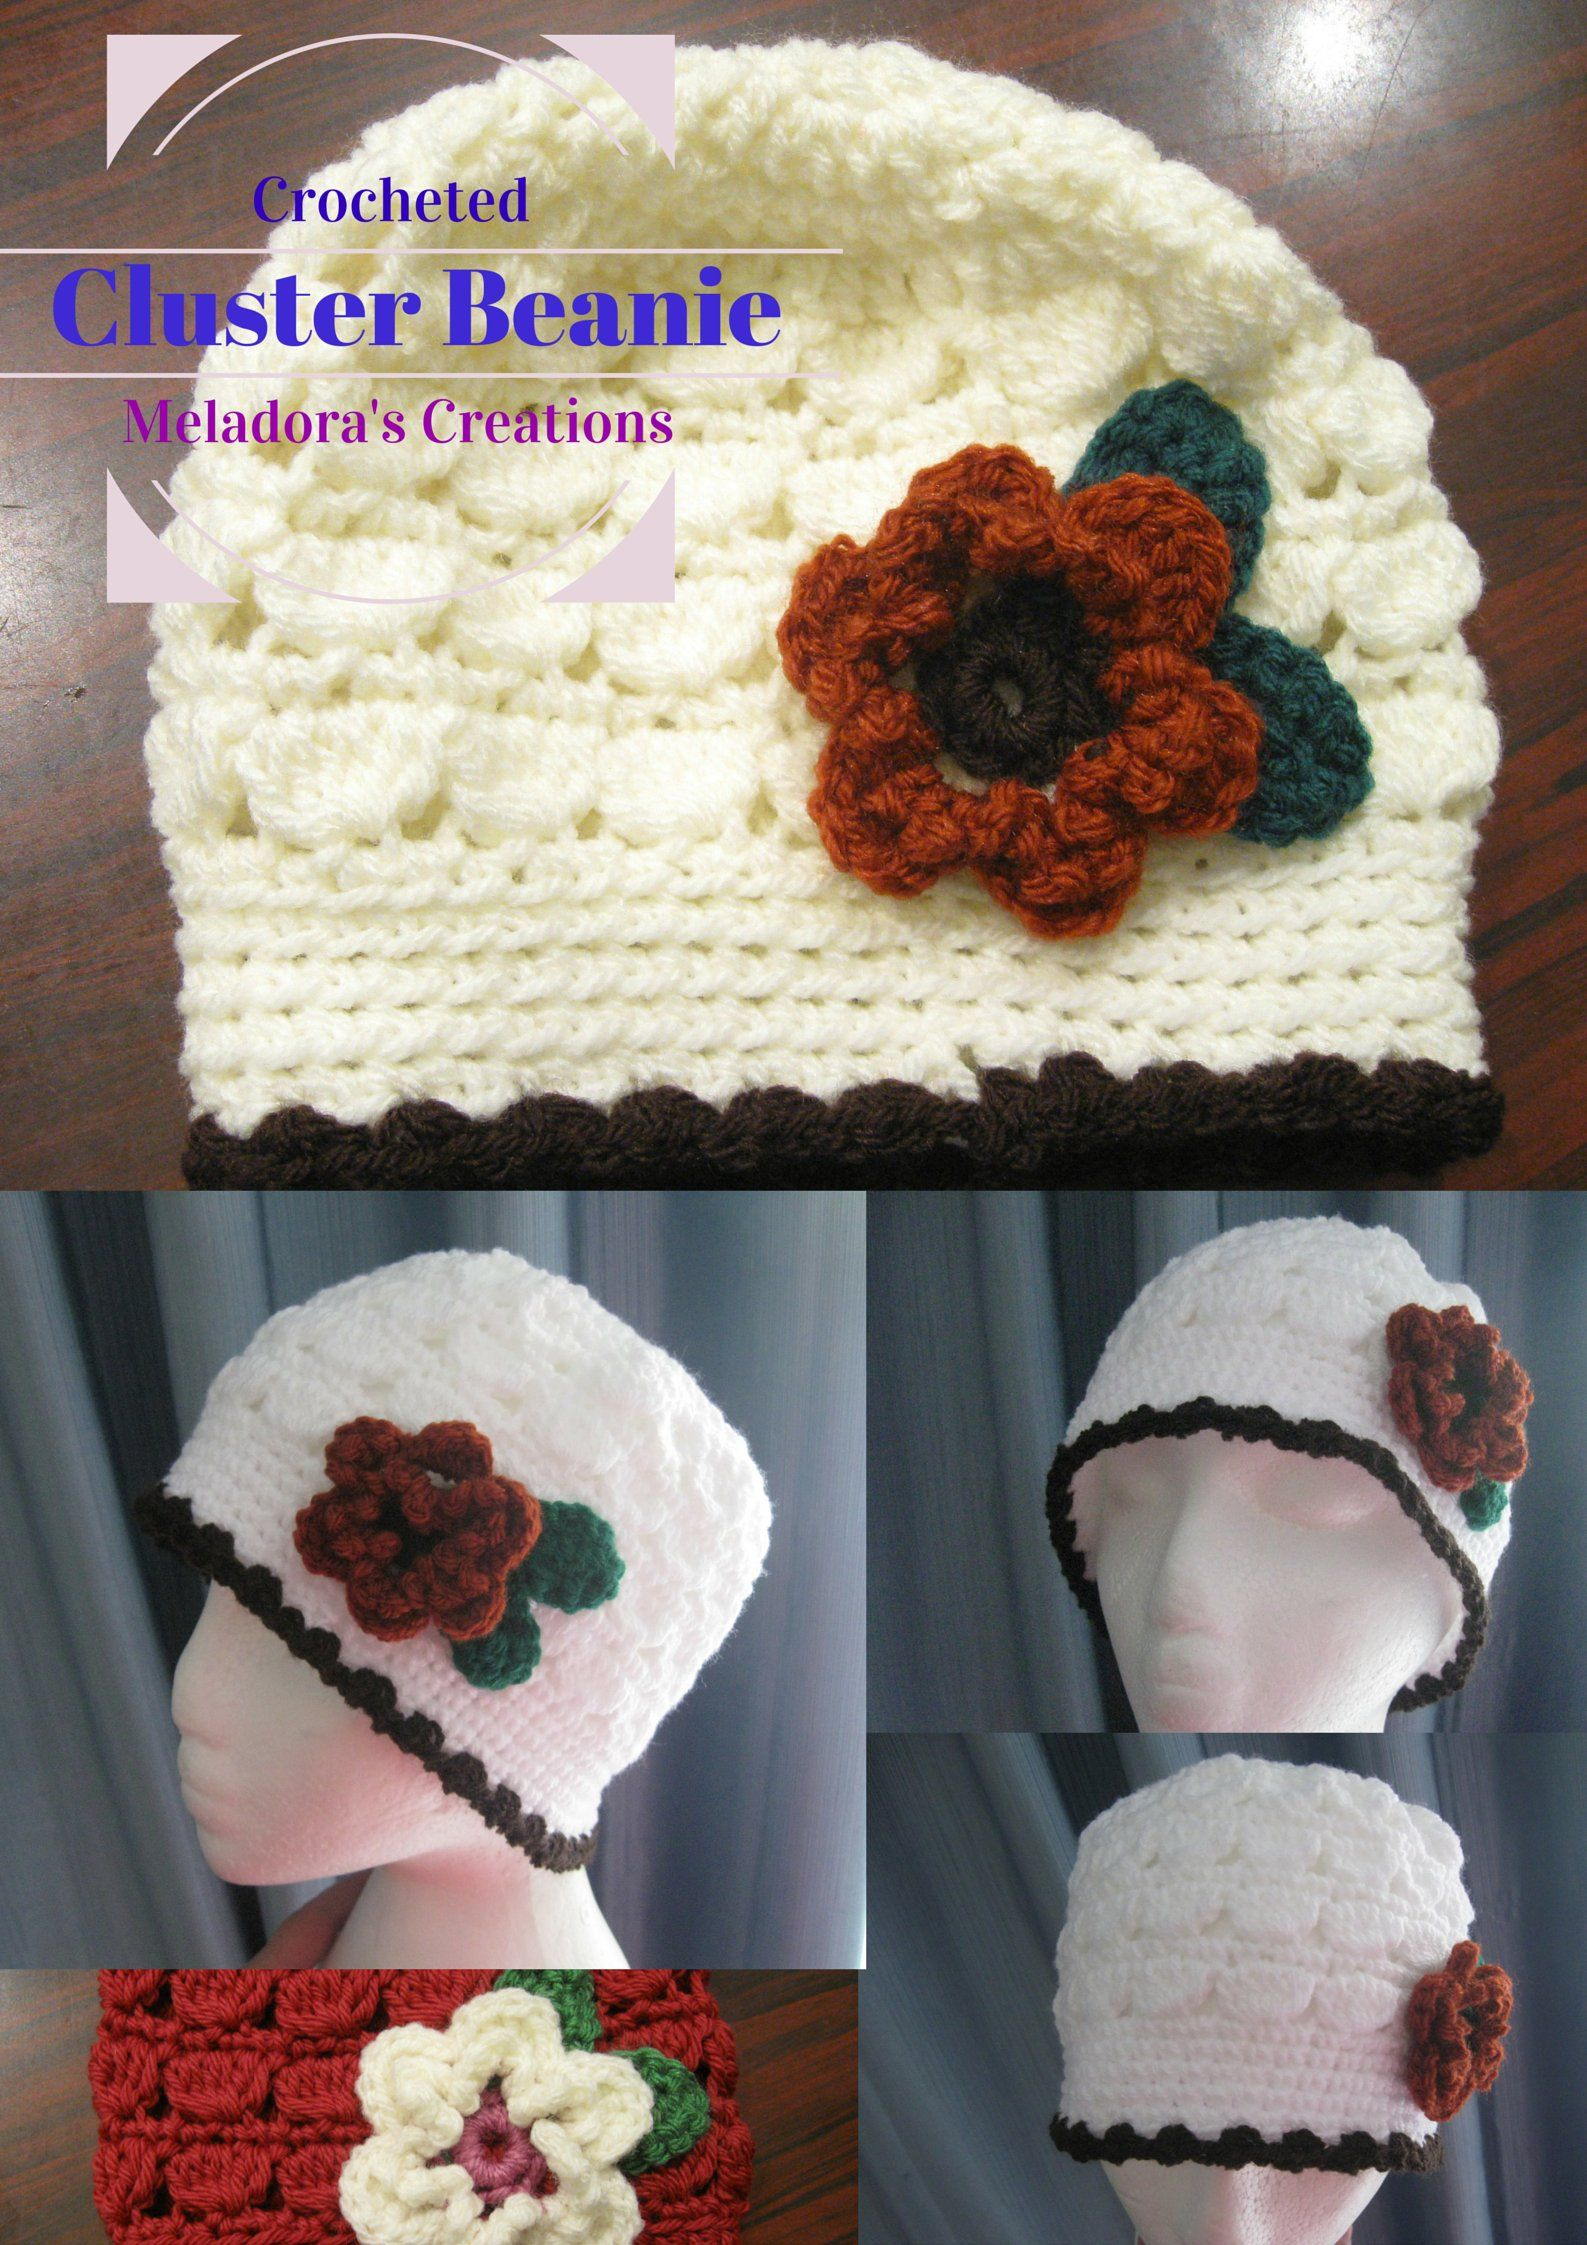 Free Crochet Pattern For Cluster Beanie : Cluster Crochet Beanie - Free Crochet Pattern & Video ...